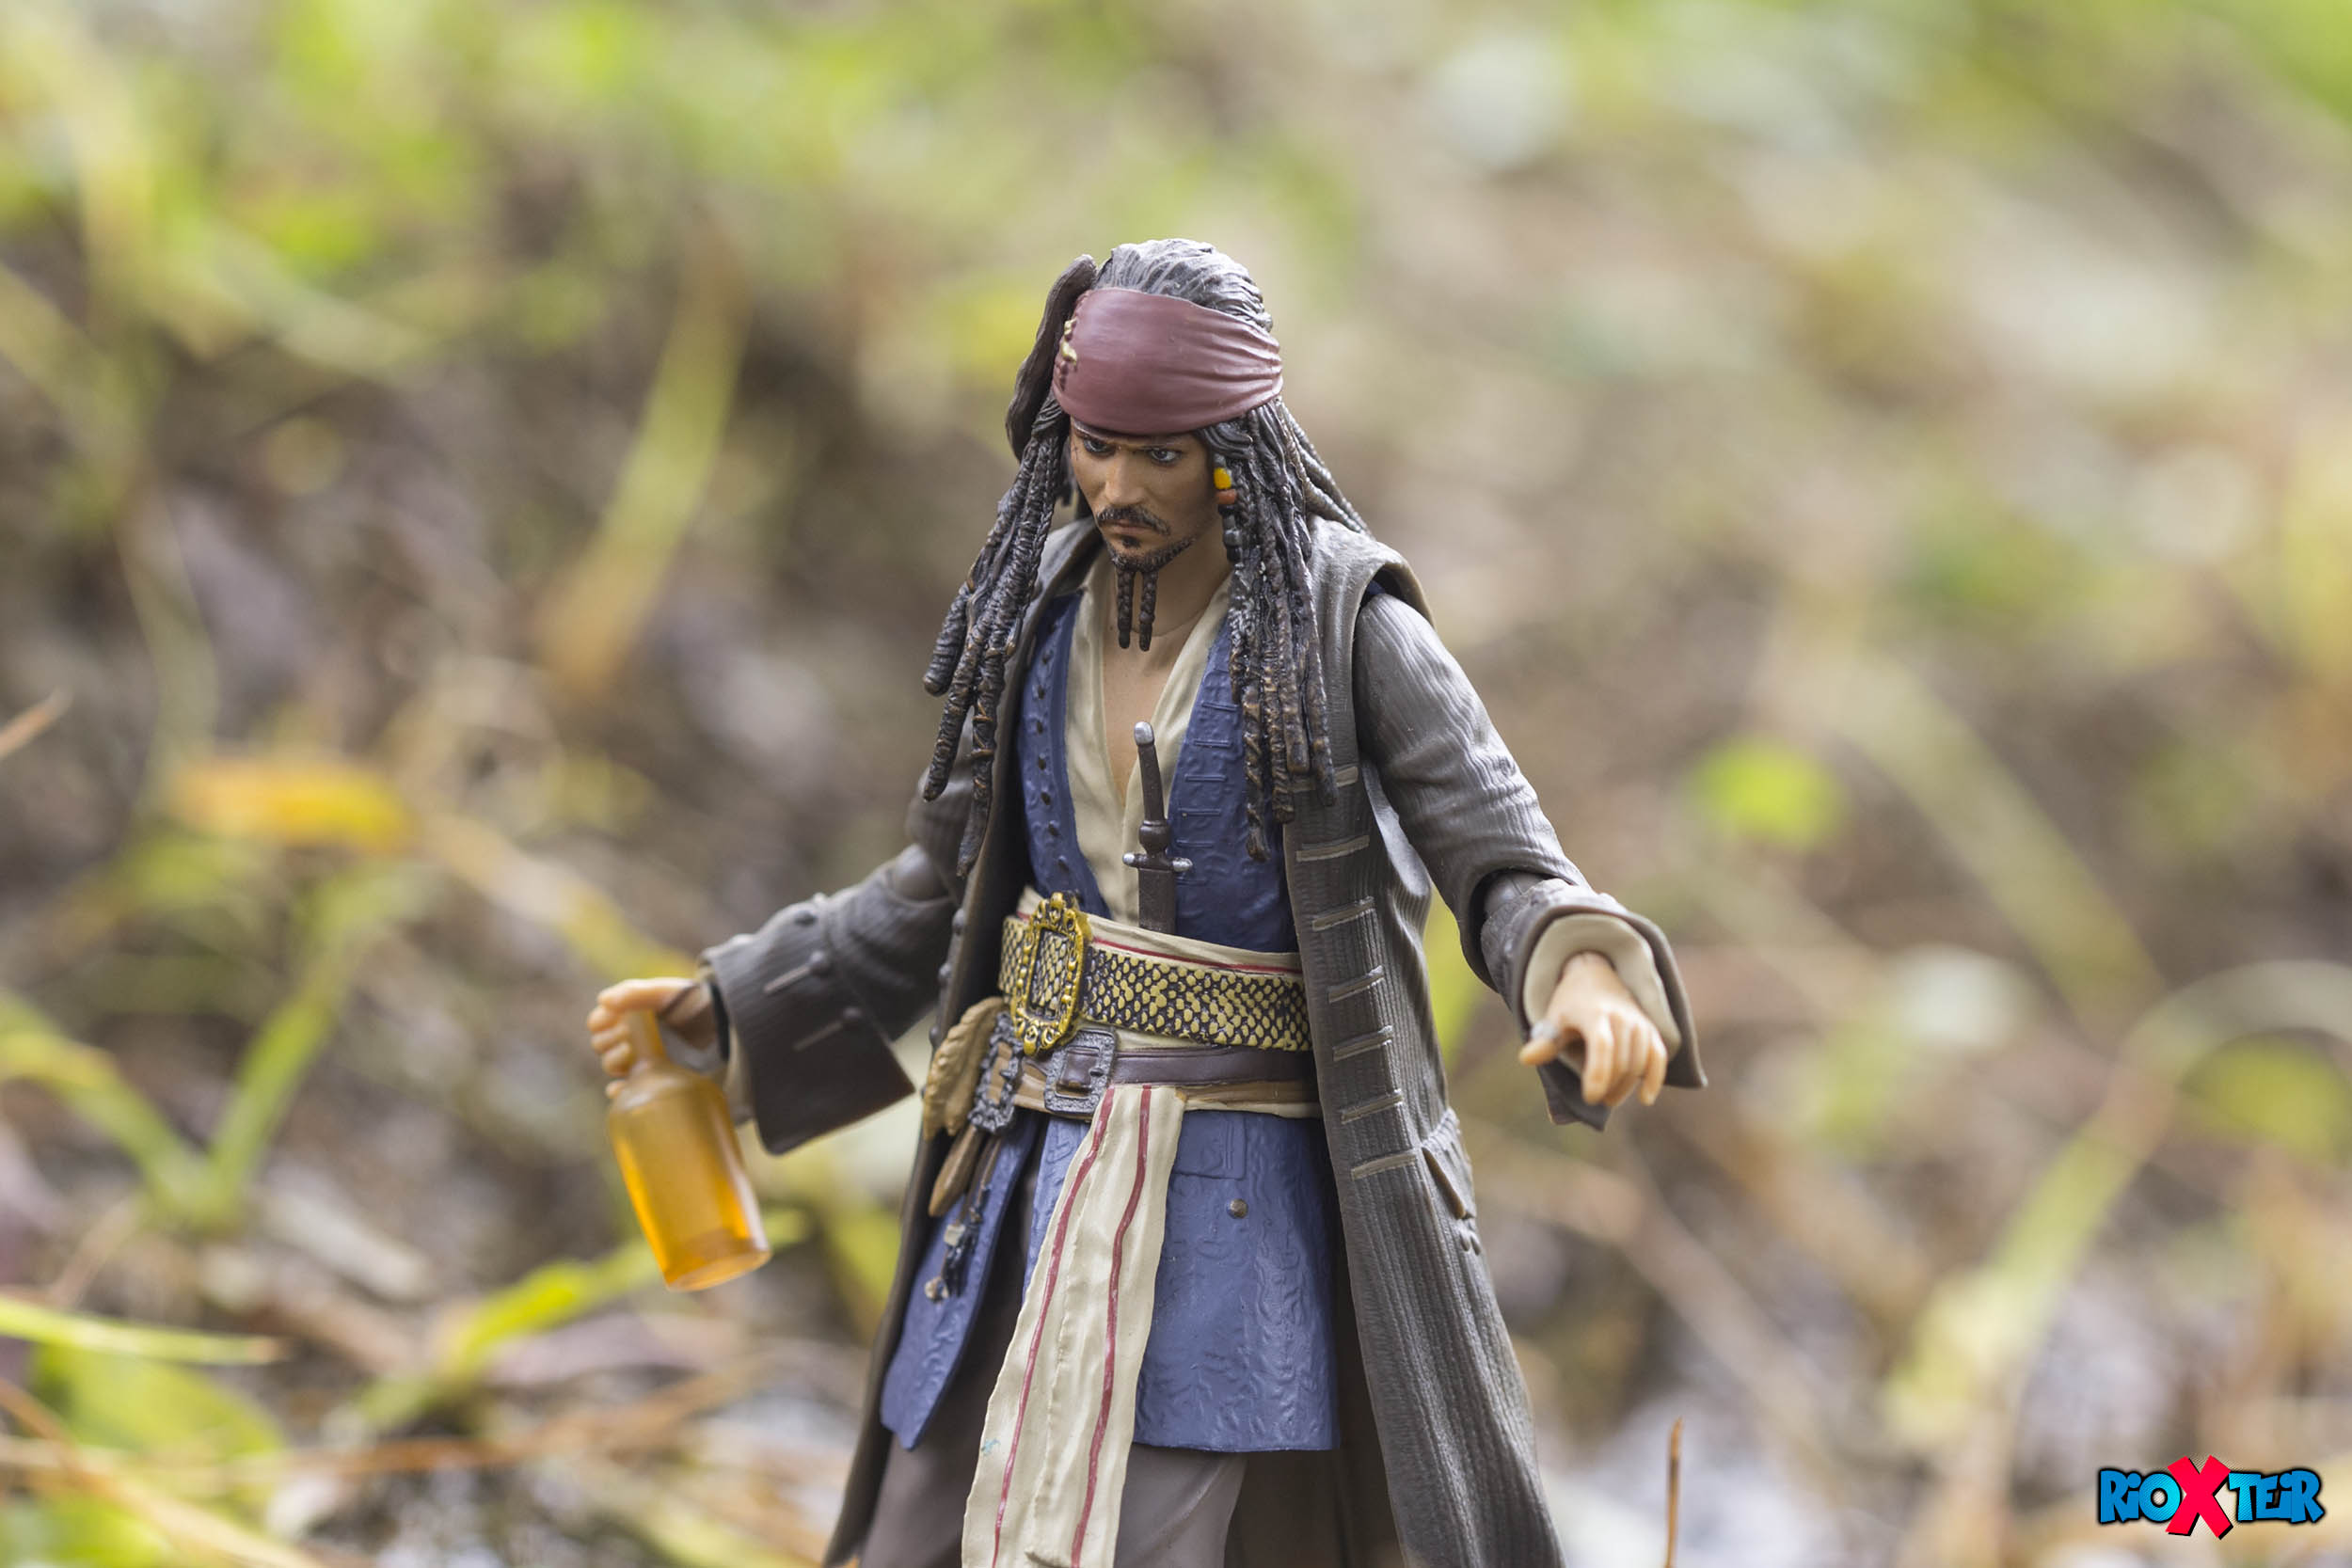 SHFiguarts Jack Sparrow Only Needs Rums